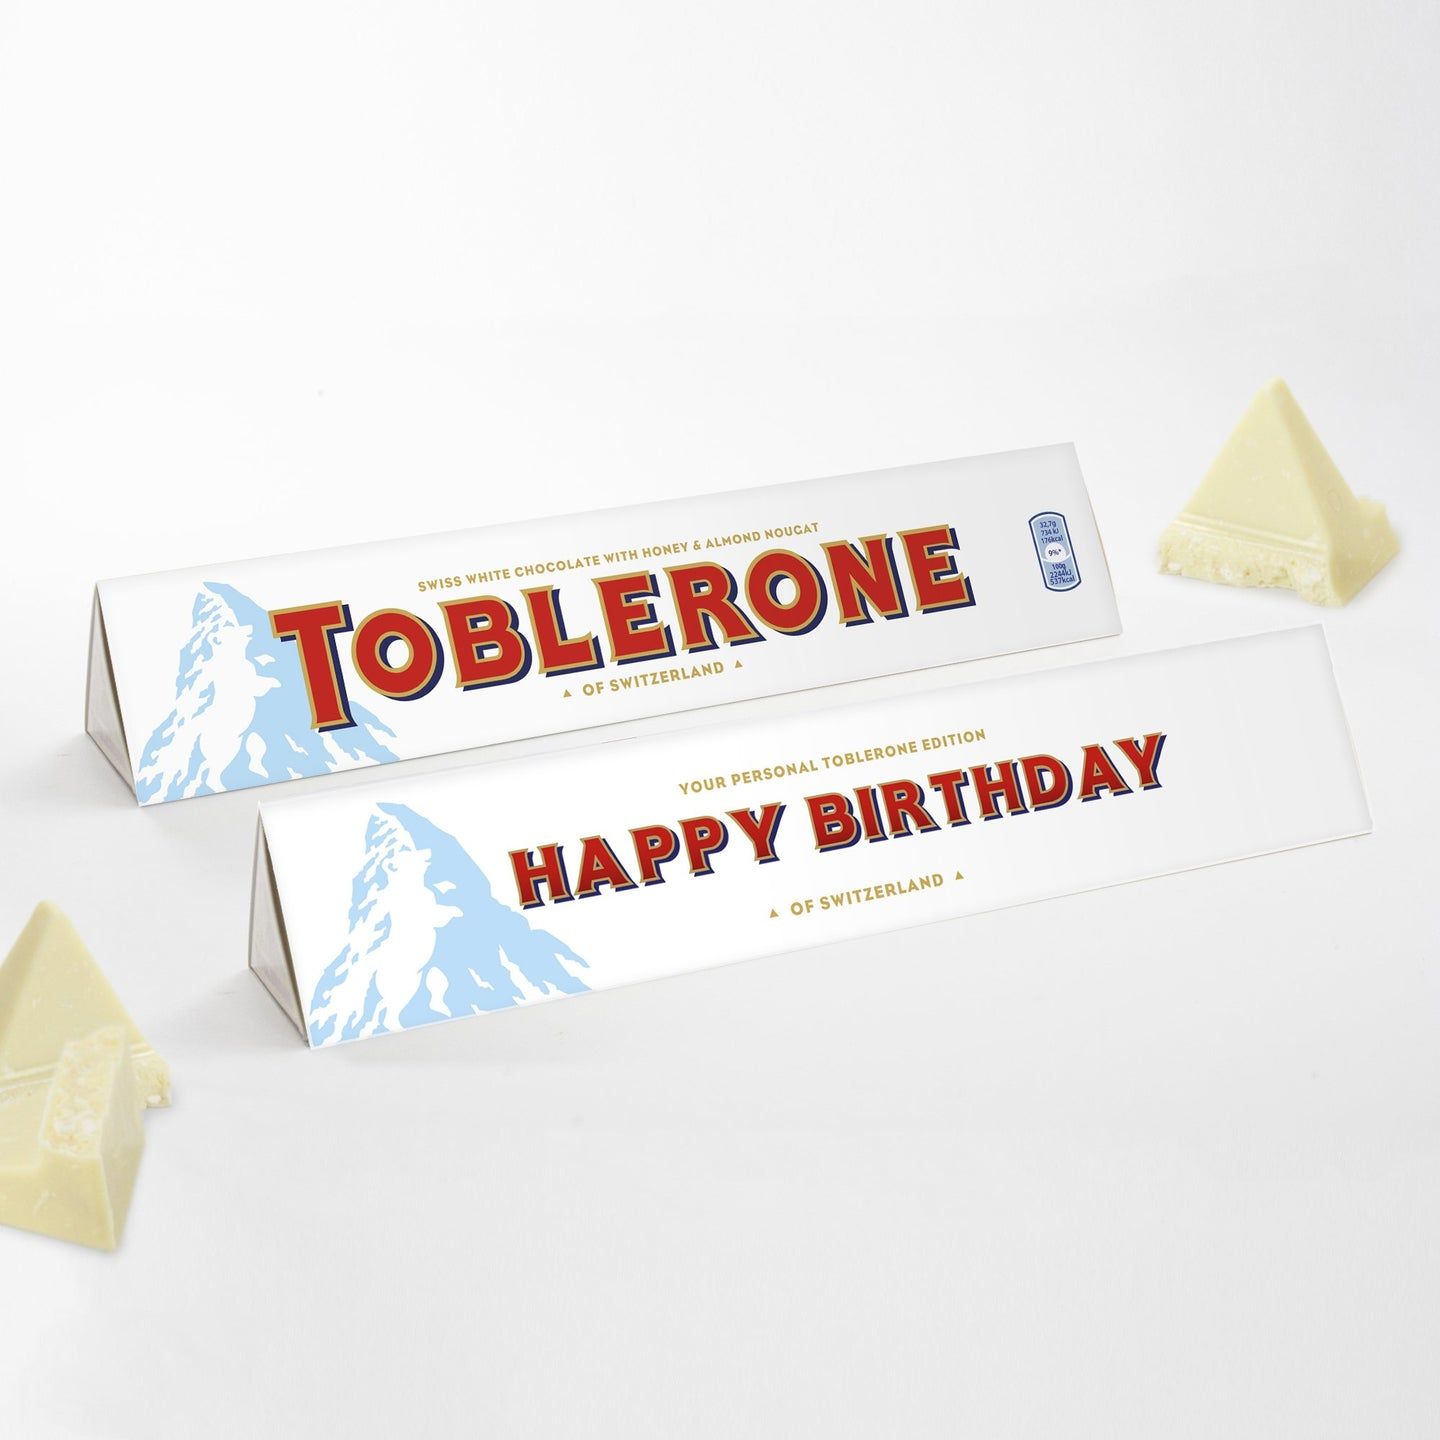 360g White Chocolate Toblerone with 'Happy Birthday' Sleeve